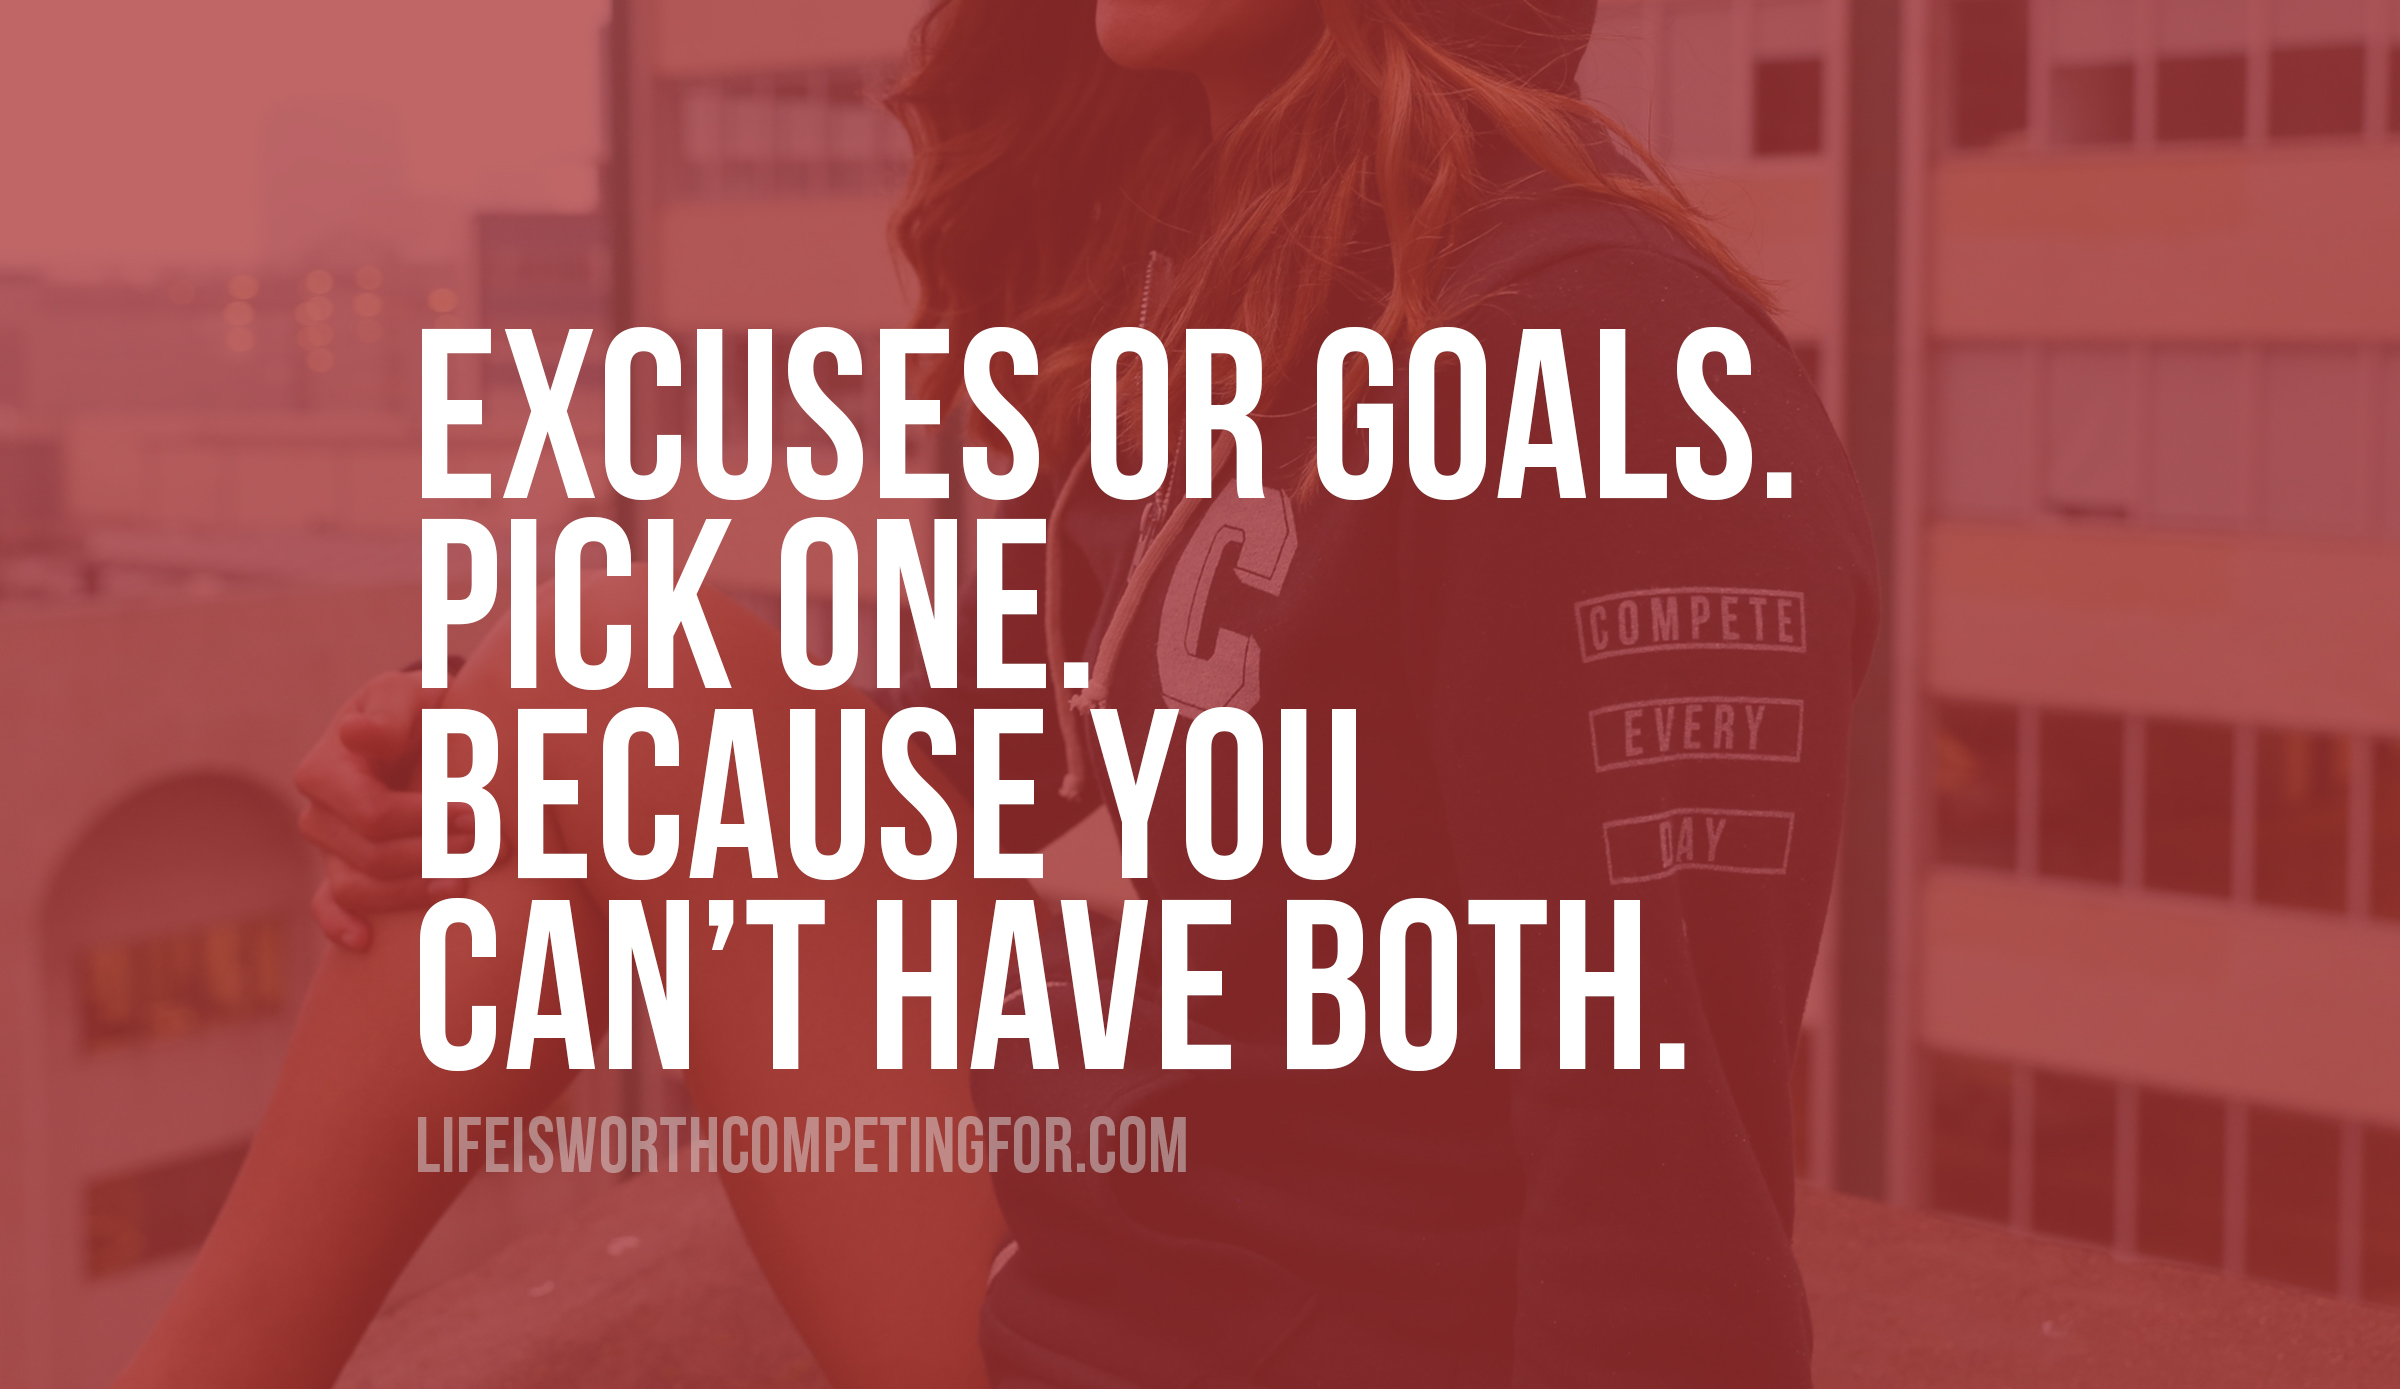 Excuses or Goals?